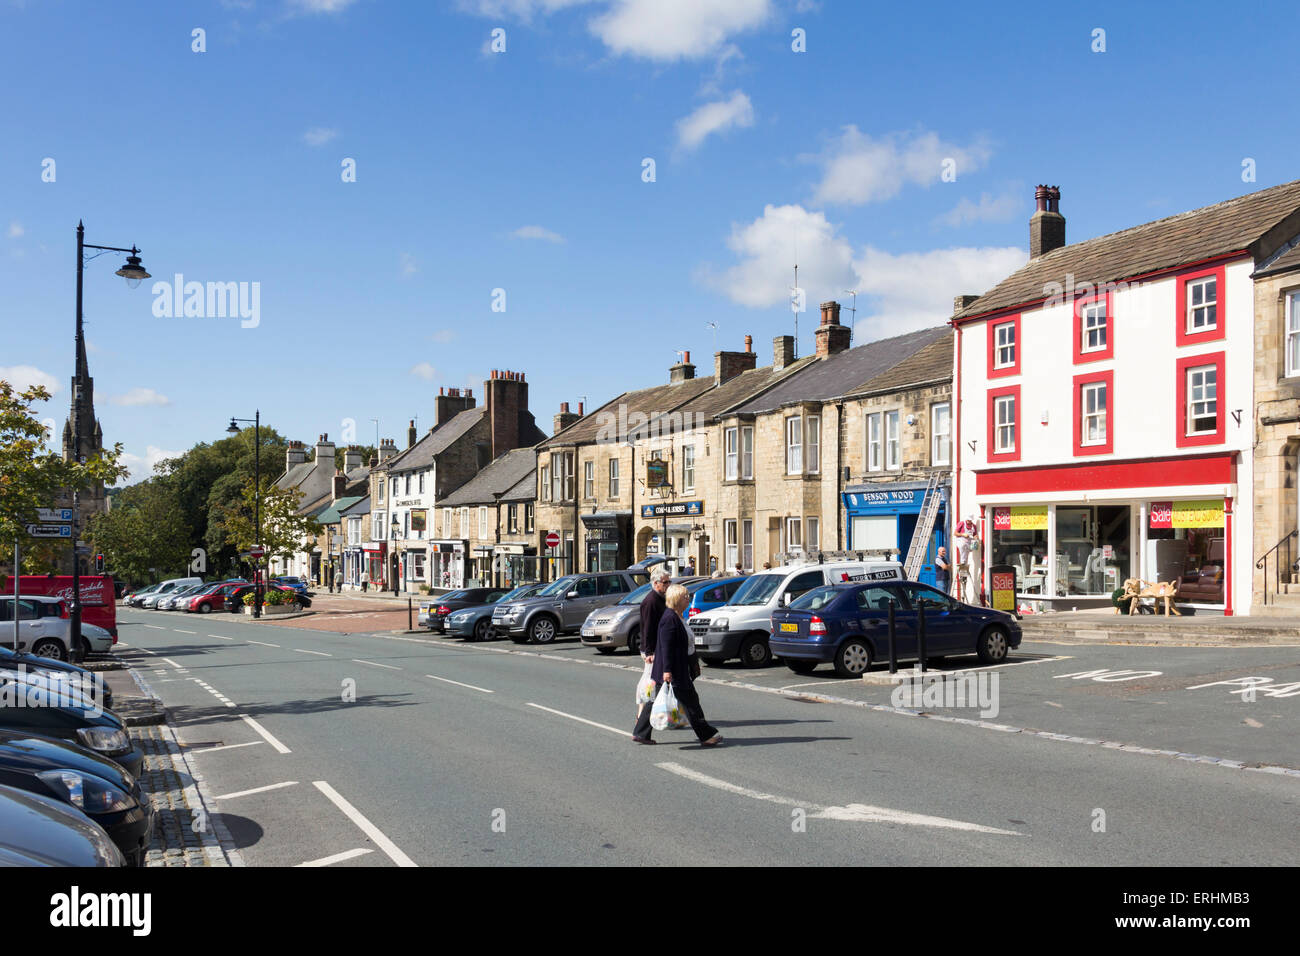 Shops and people on Galgate in Barnard Castle towncentre, County Durham. Viewing south-west. - Stock Image